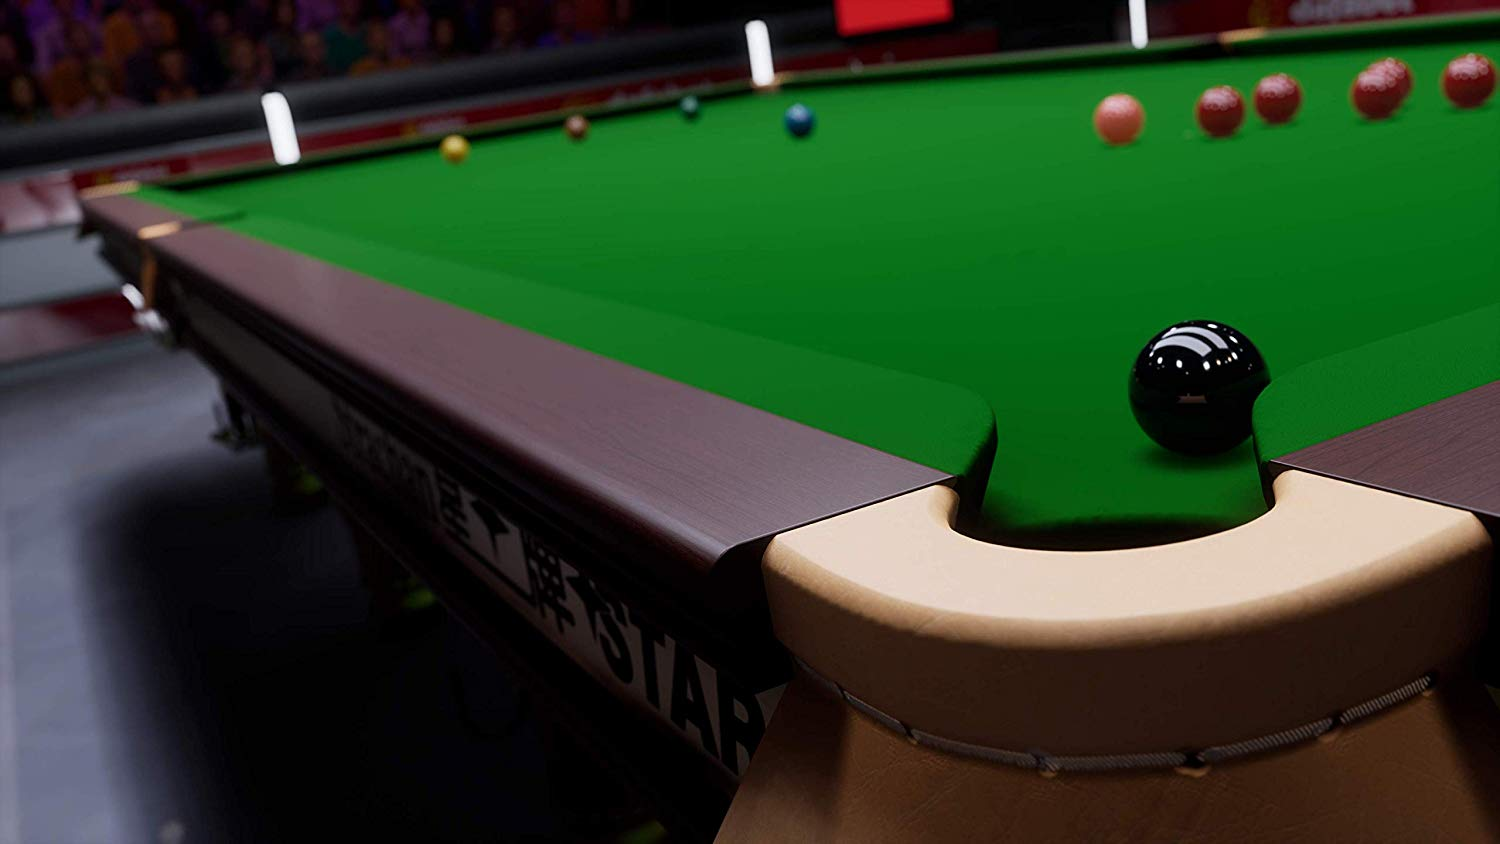 Snooker 19 - Nintendo Switch